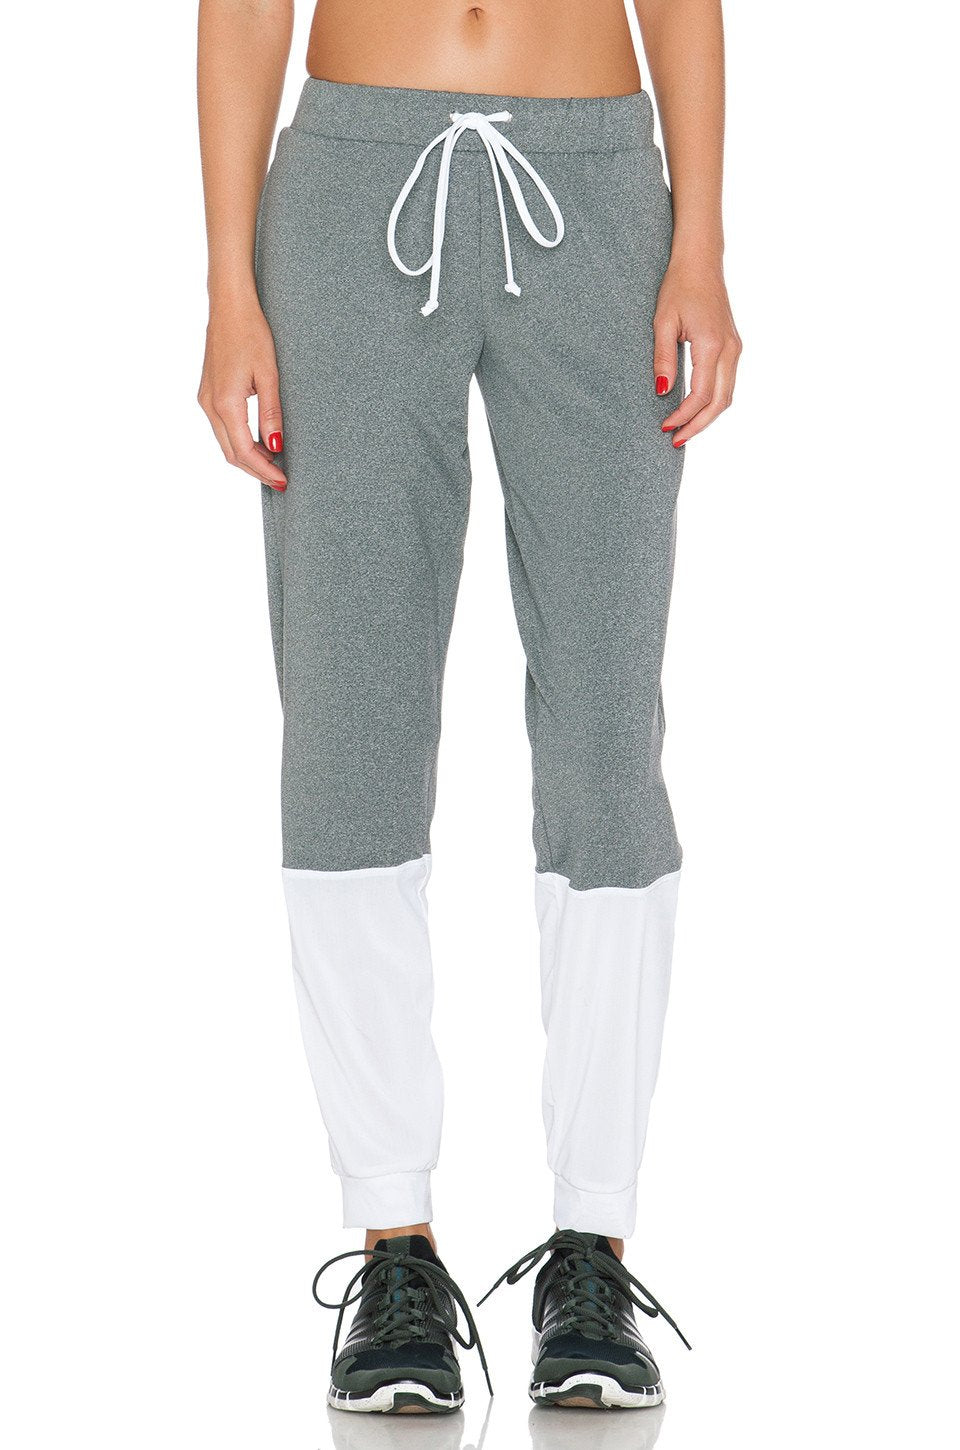 Immersion Sweatpant - Kustom Label - 1